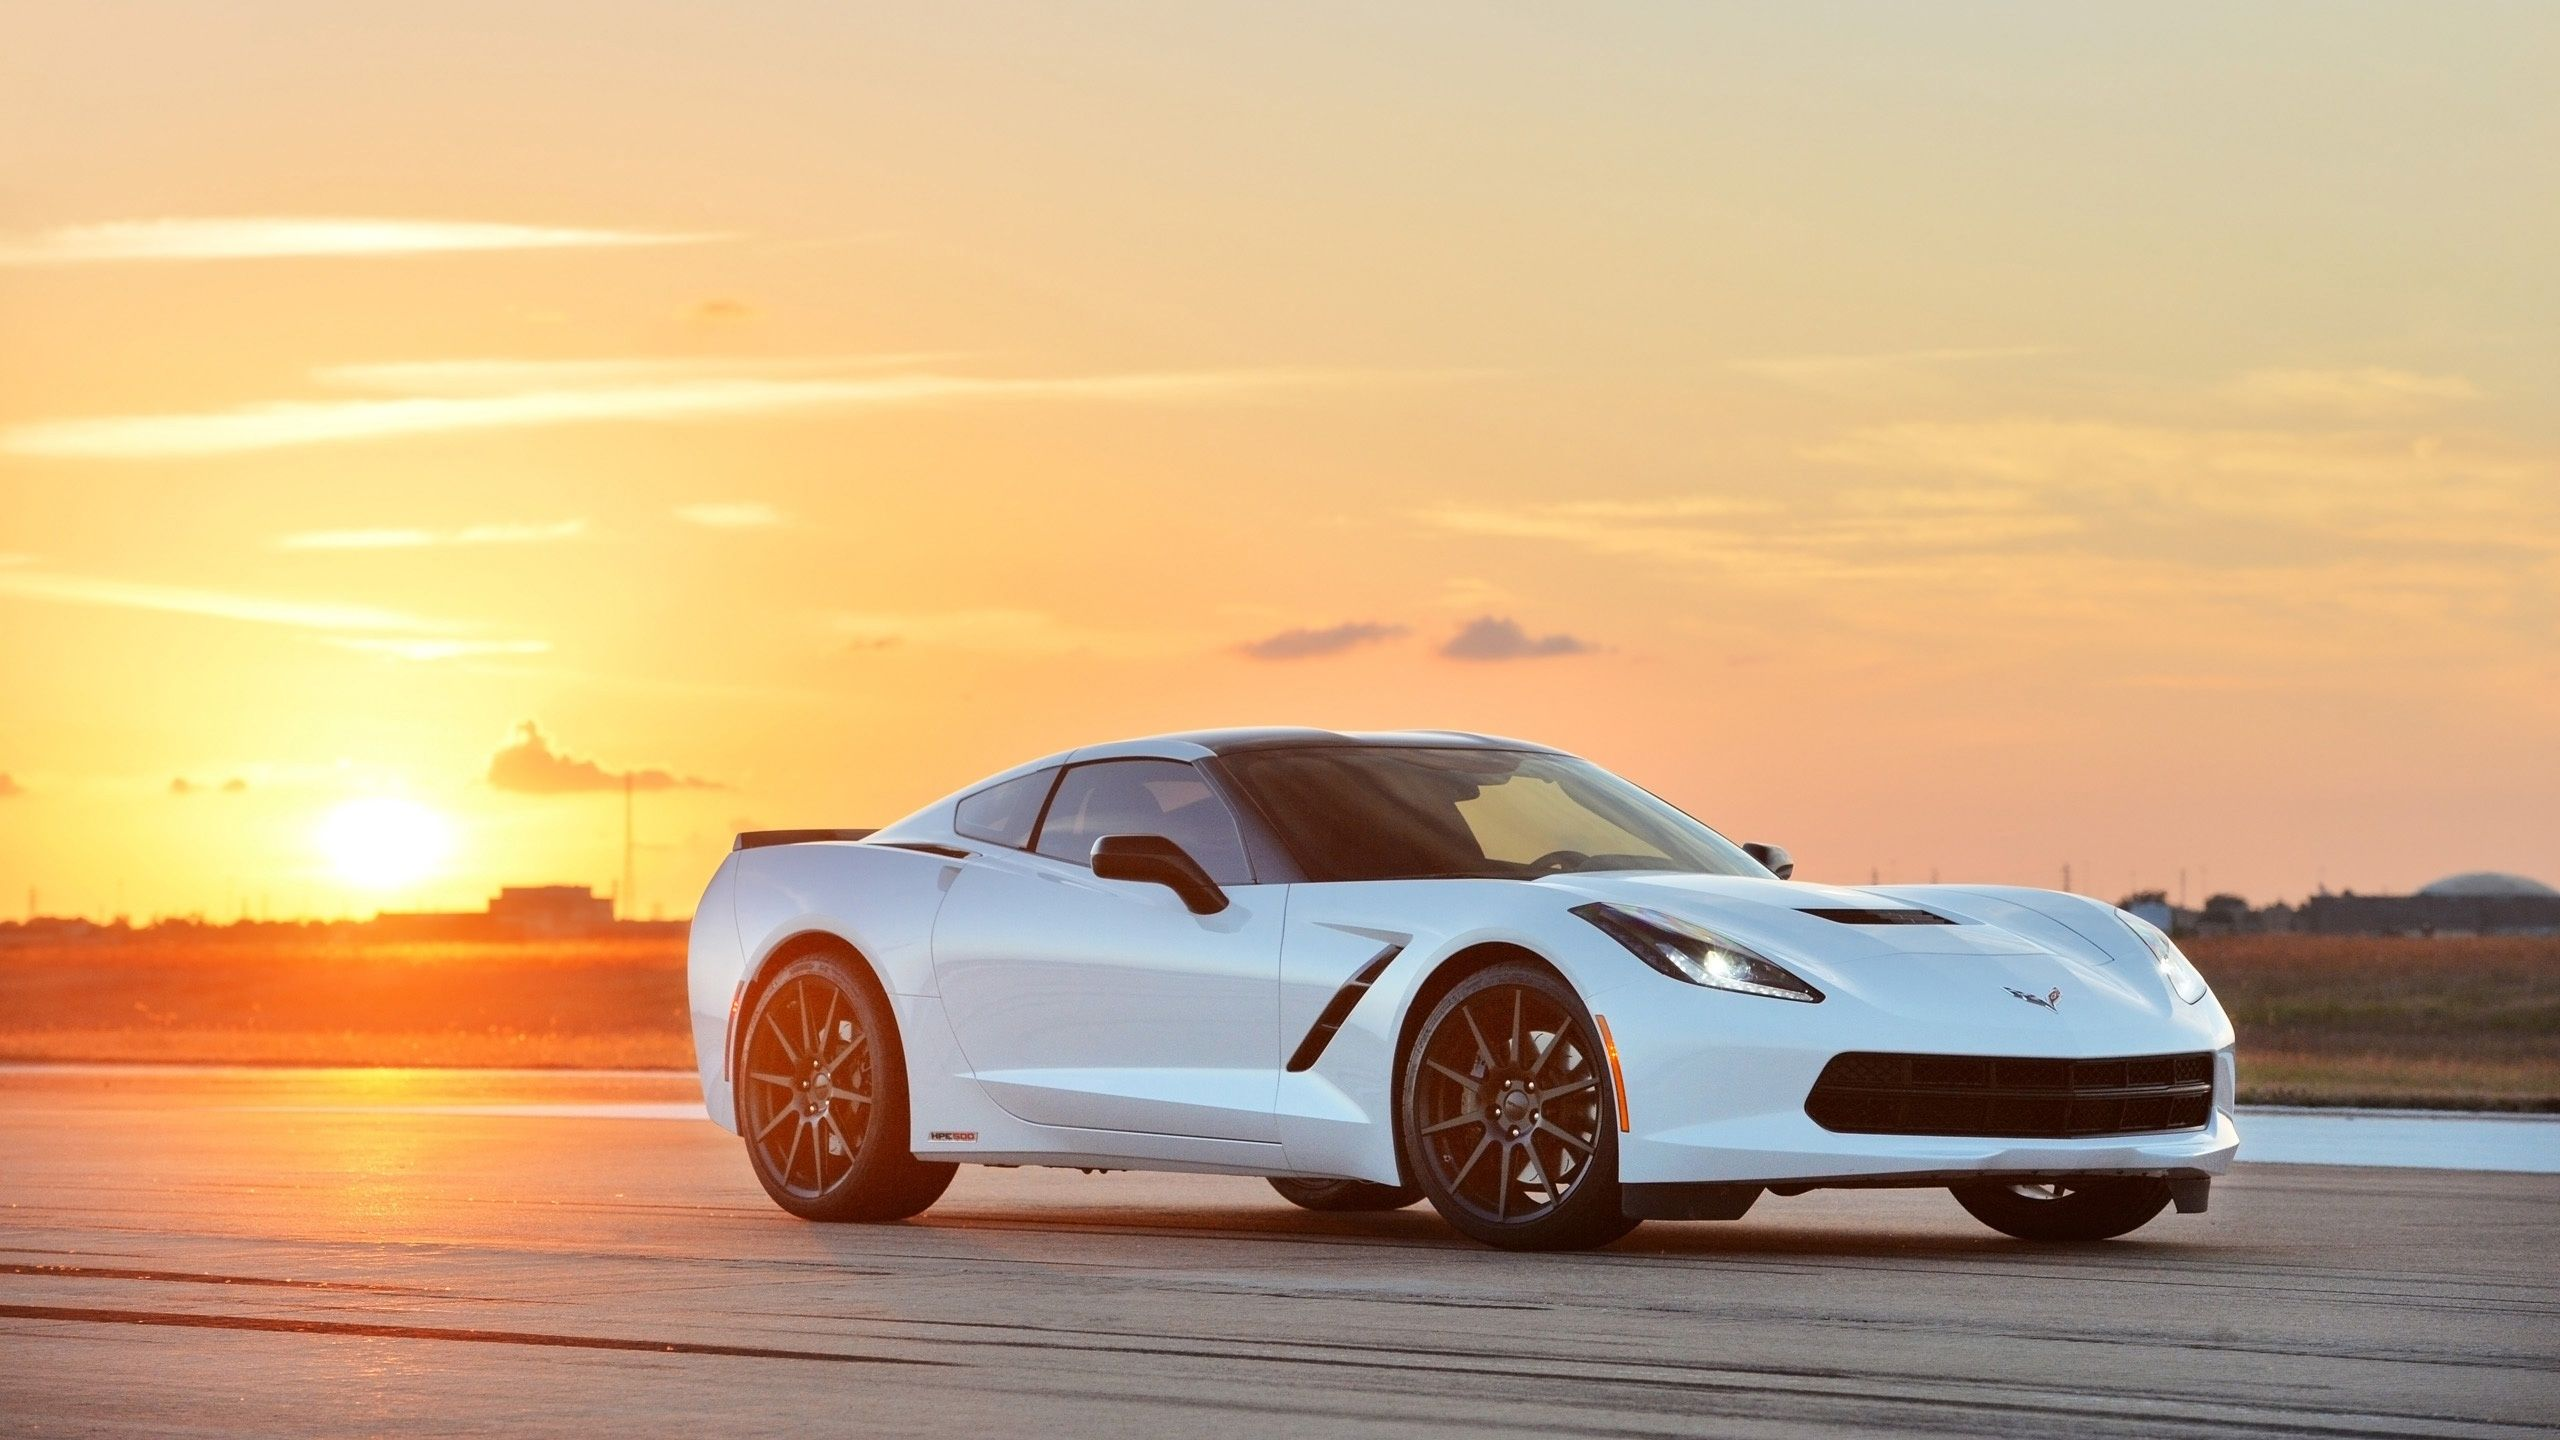 Corvette Stingray 2015 Wallpapers HD 2560x1440